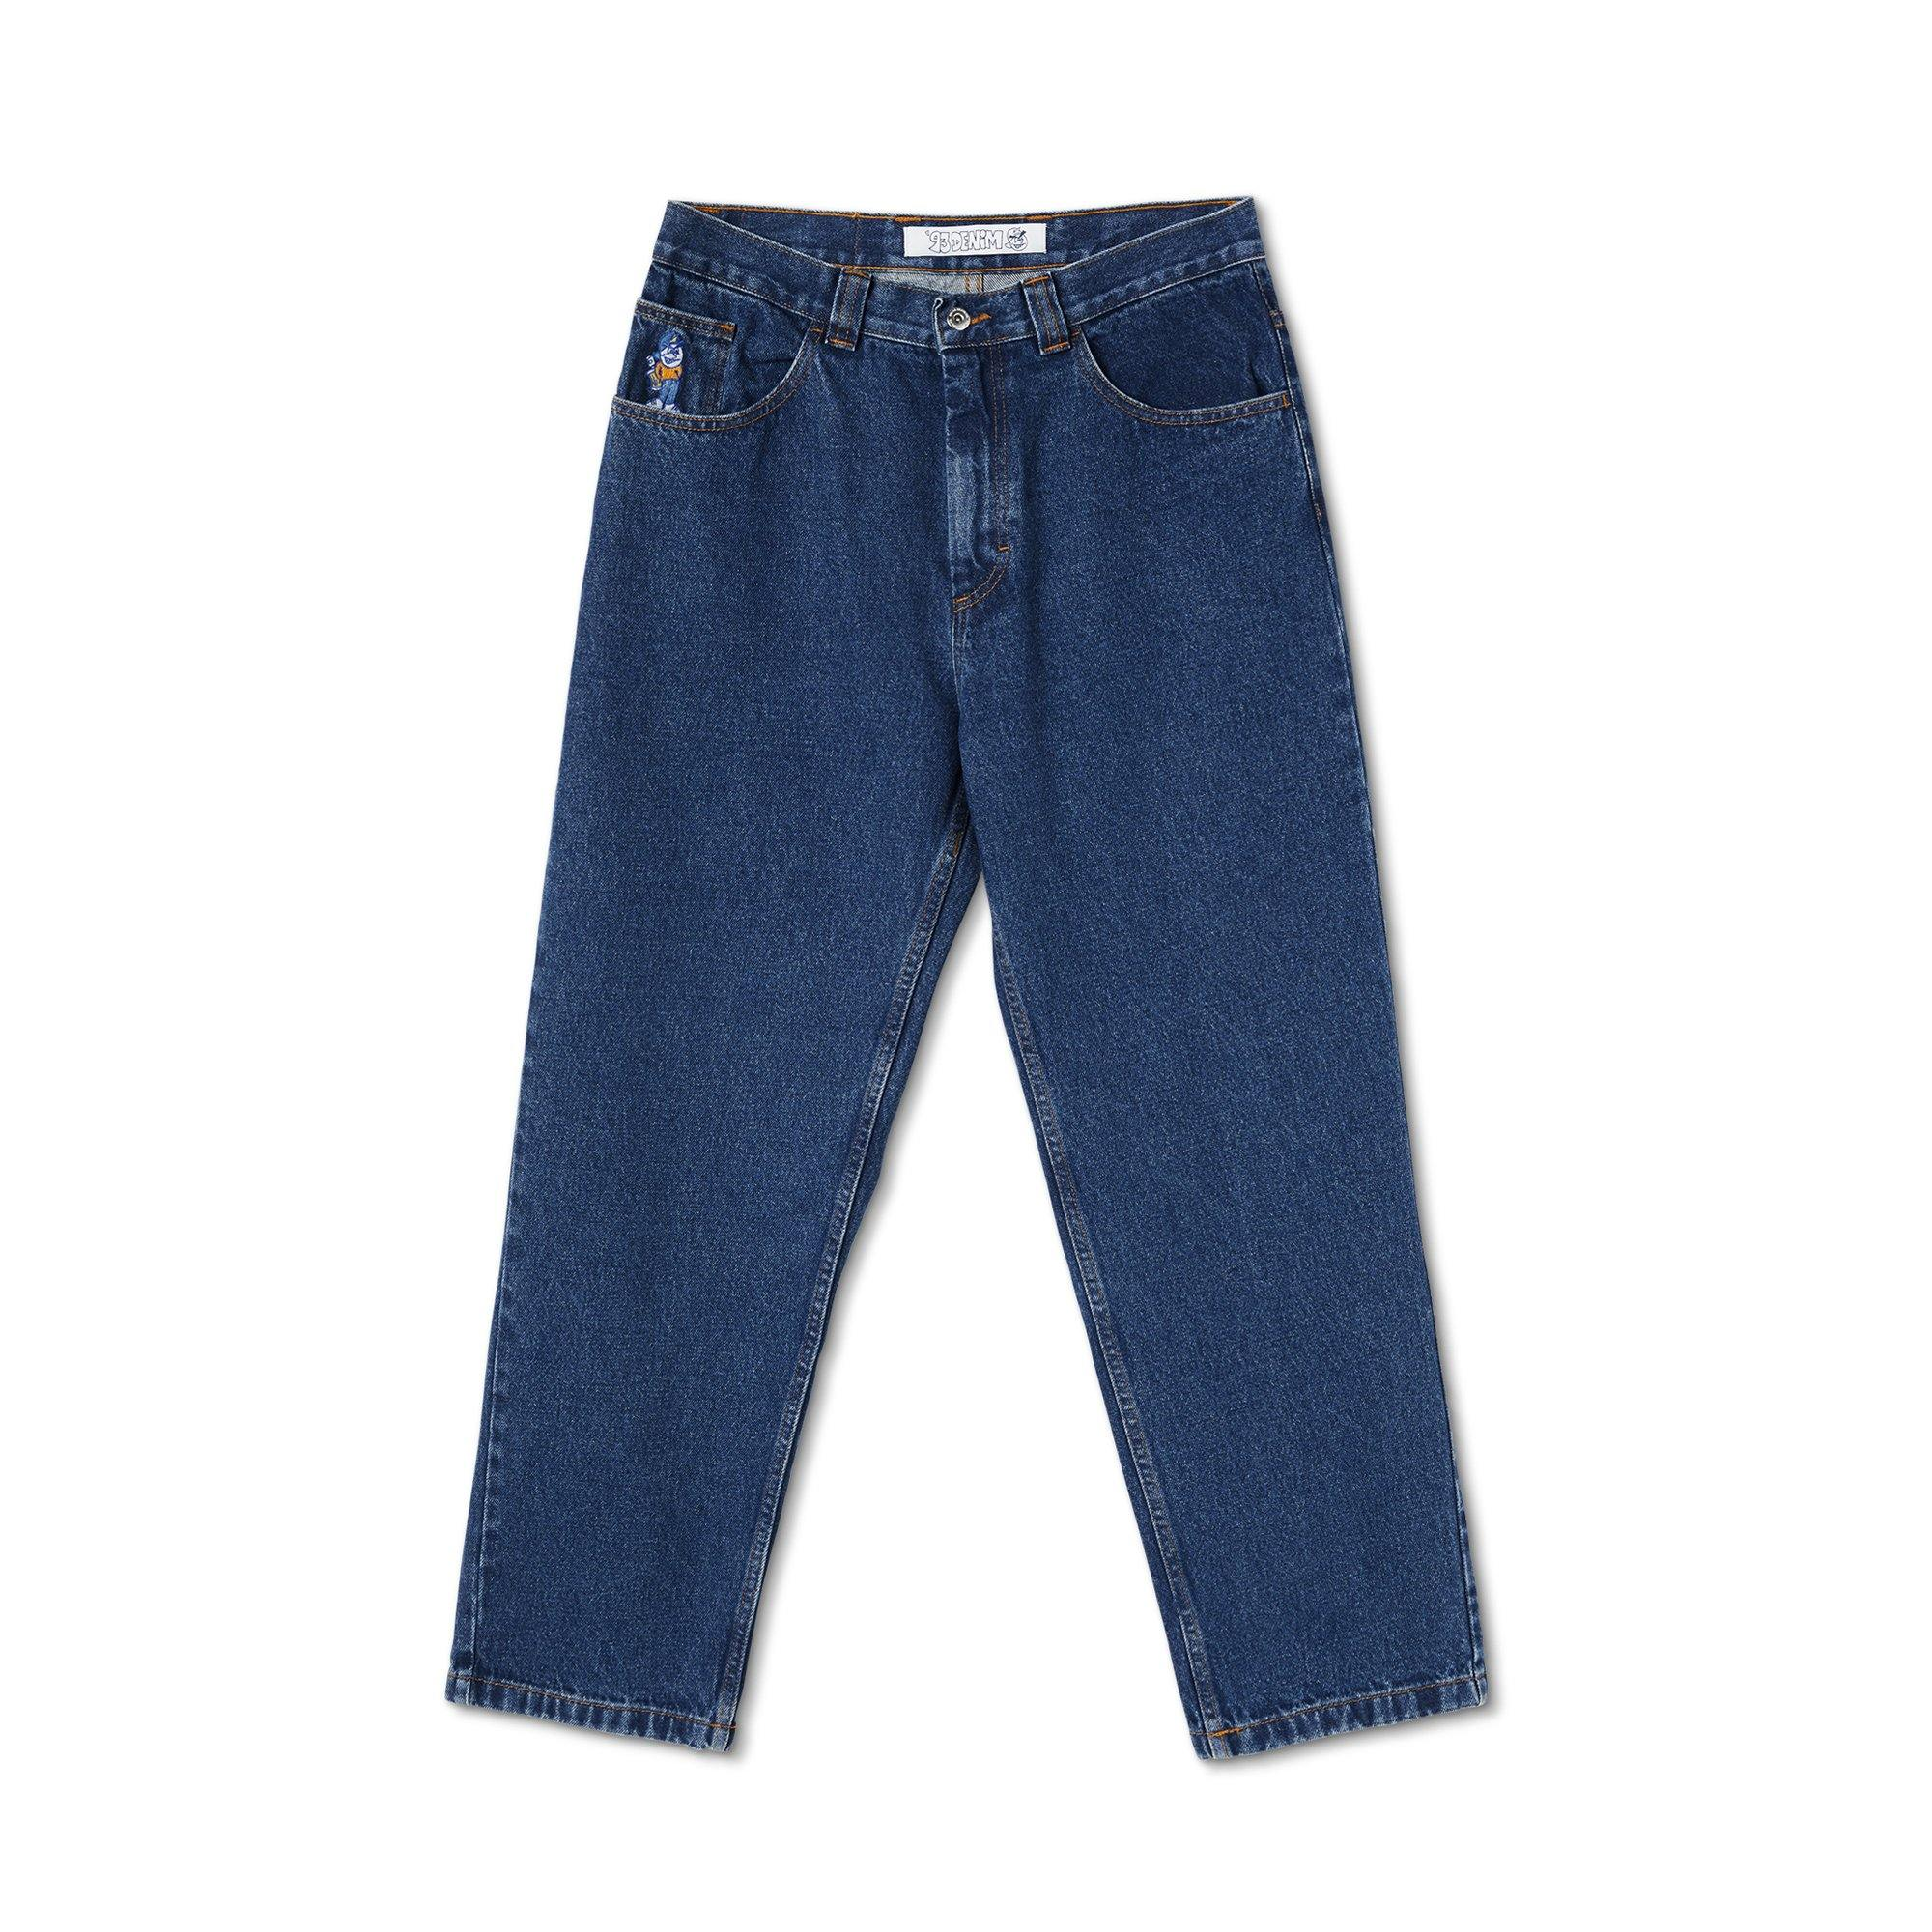 Pantalon POLAR '93 Denim Dark Blue - Bleu foncé